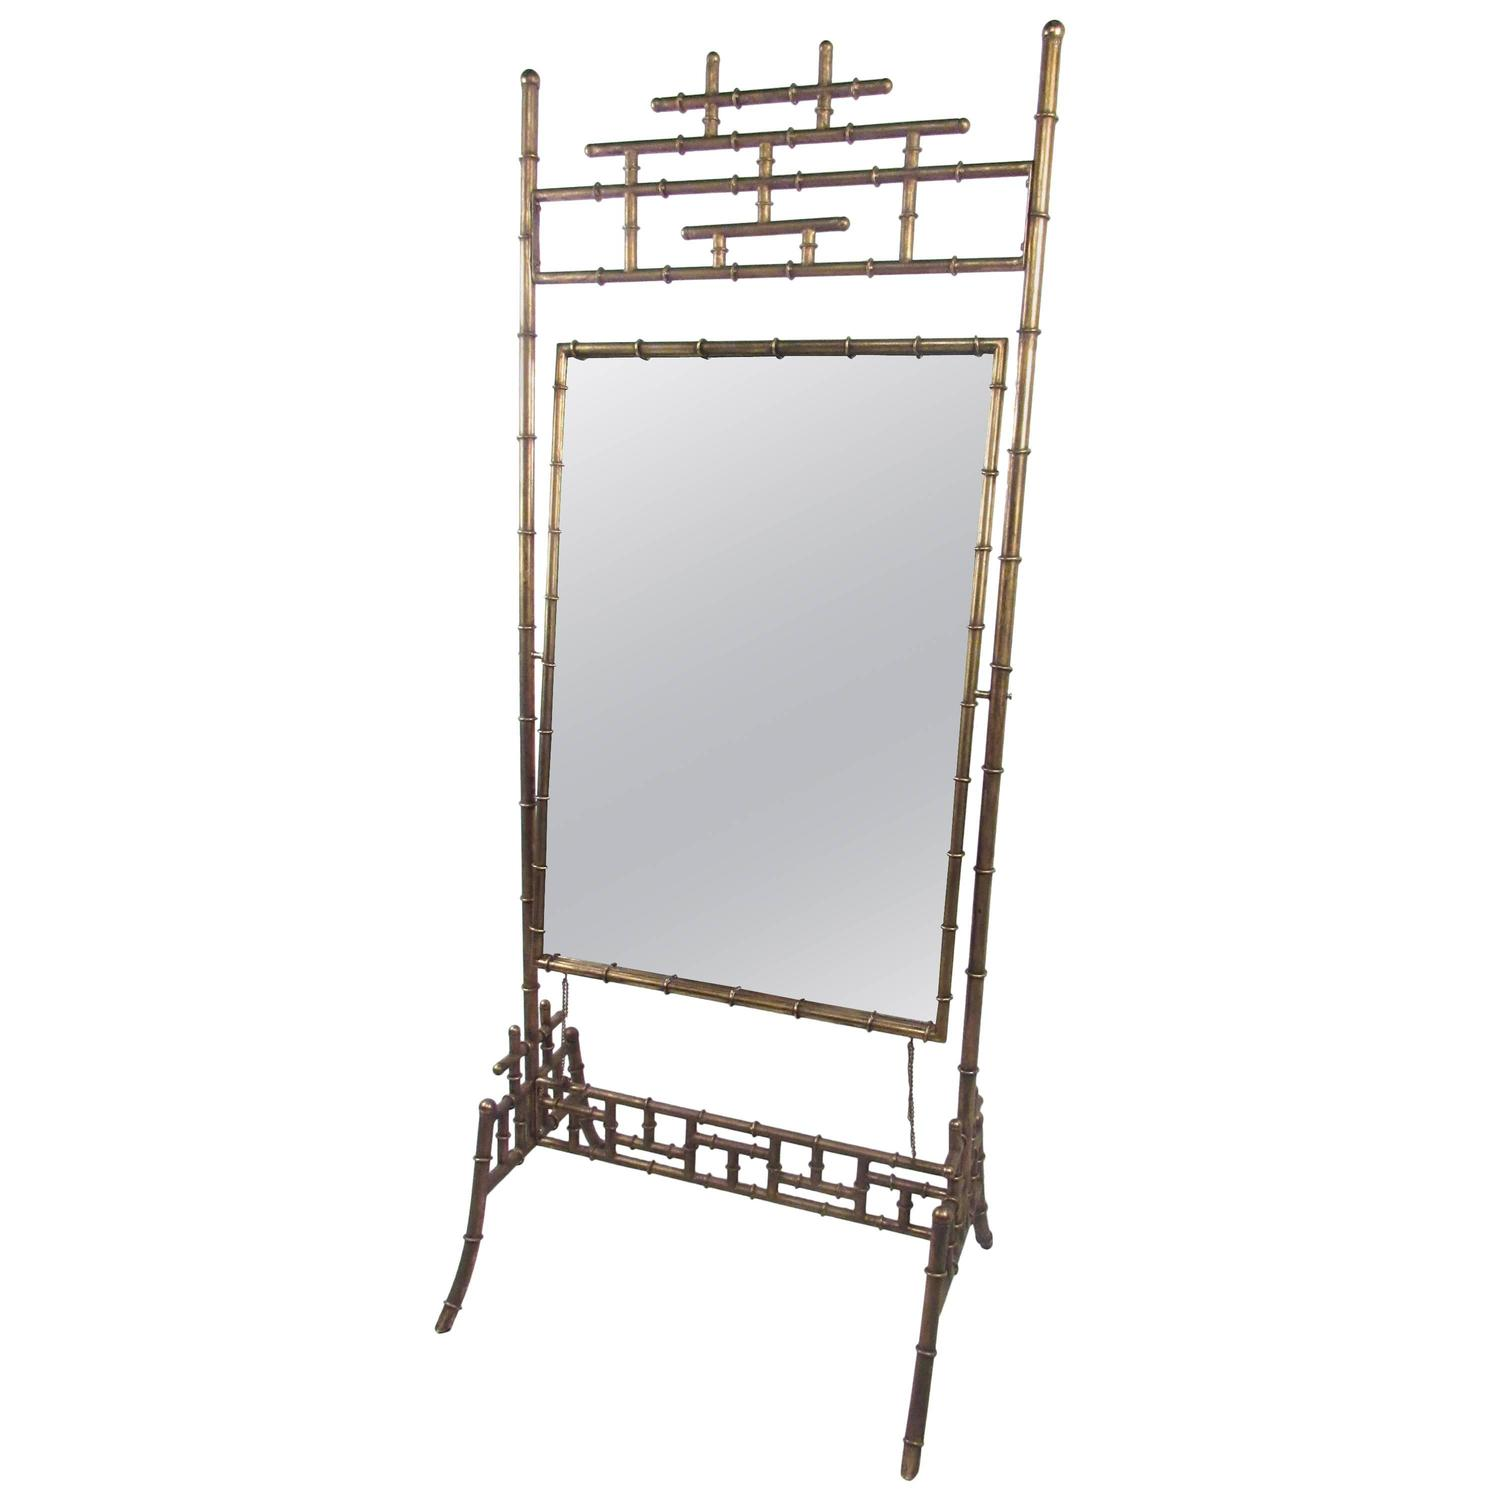 Stylish vintage full length bamboo style dressing mirror for Vintage floor length mirror